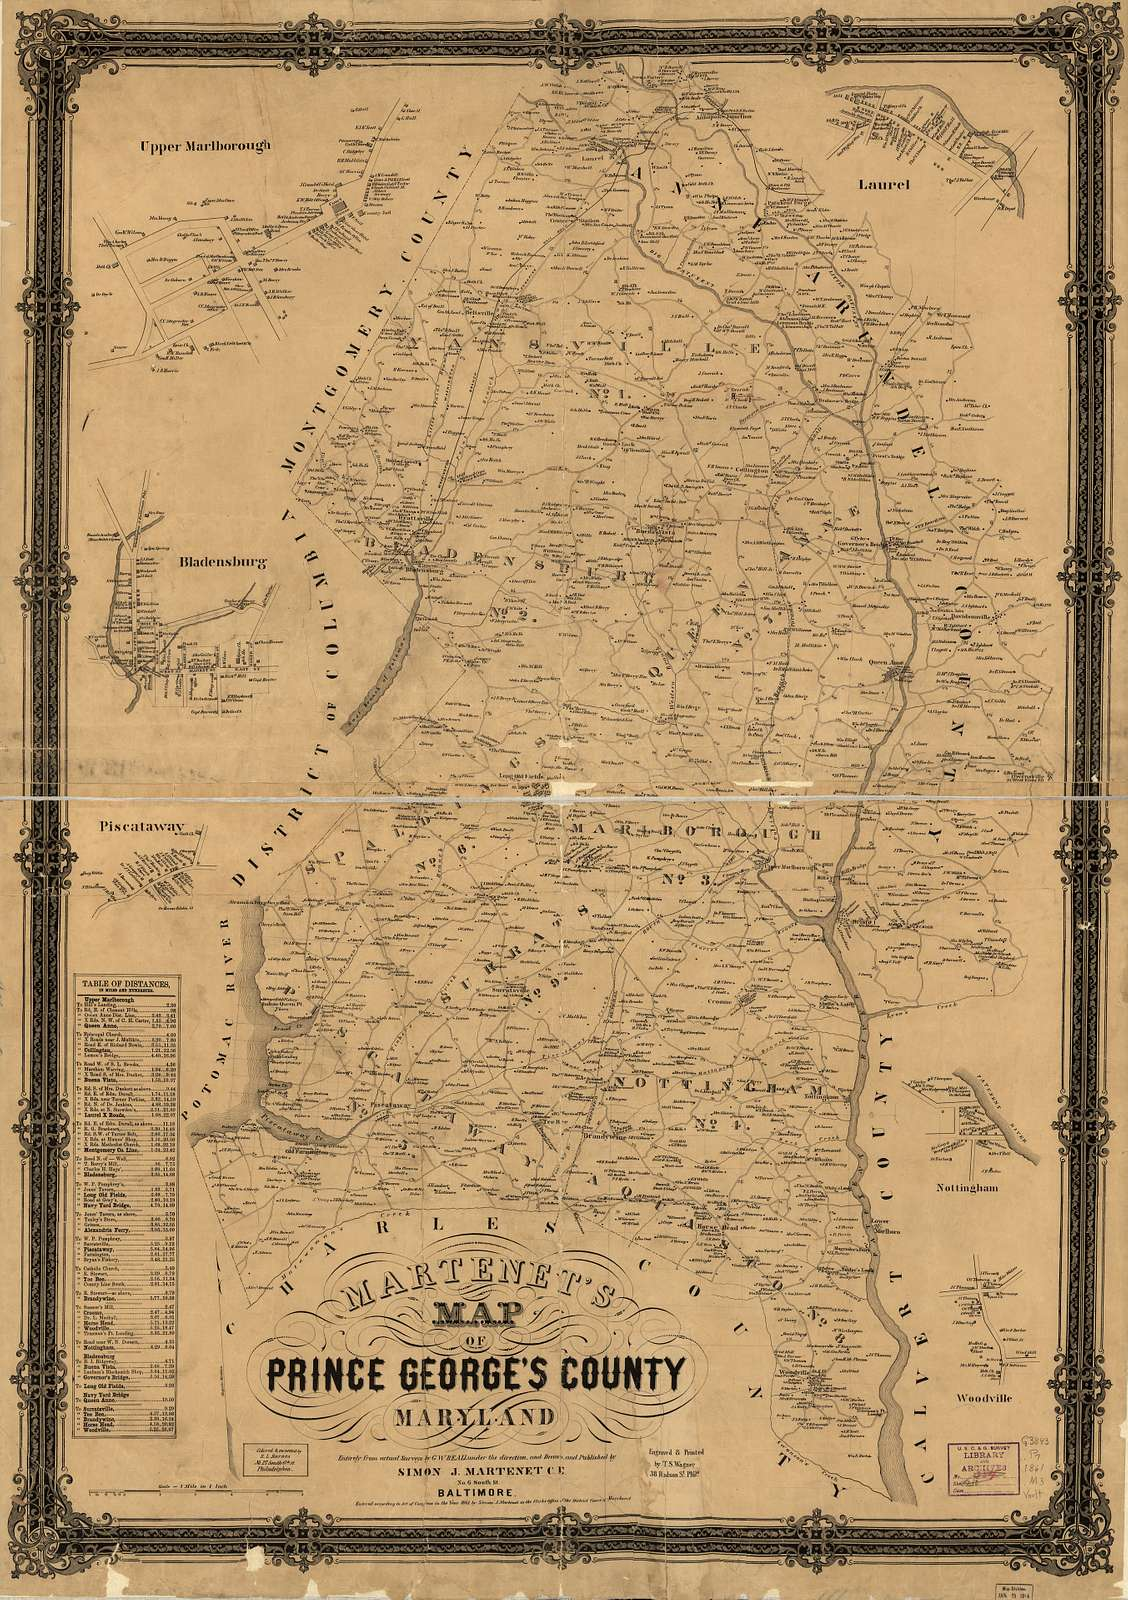 Martenet's Map of Prince George's County, Maryland.